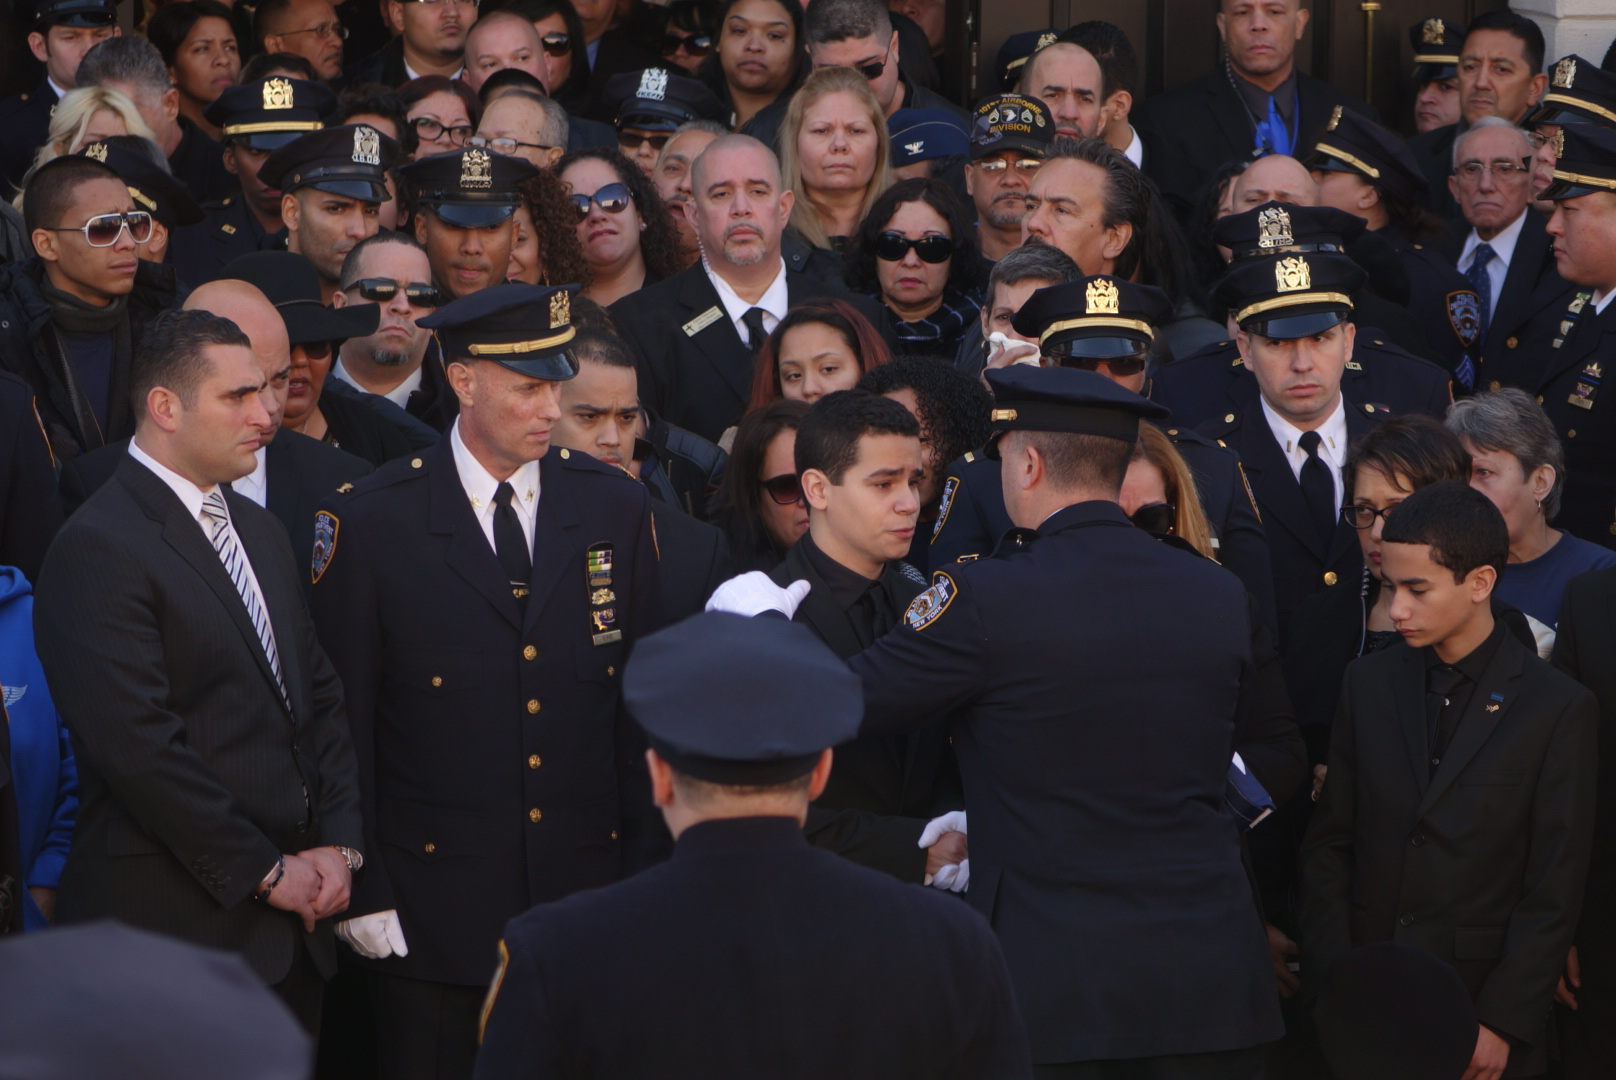 An NYPD officer embraces Det. Ramos' son after presenting the flag from Ramos' casket to his family.